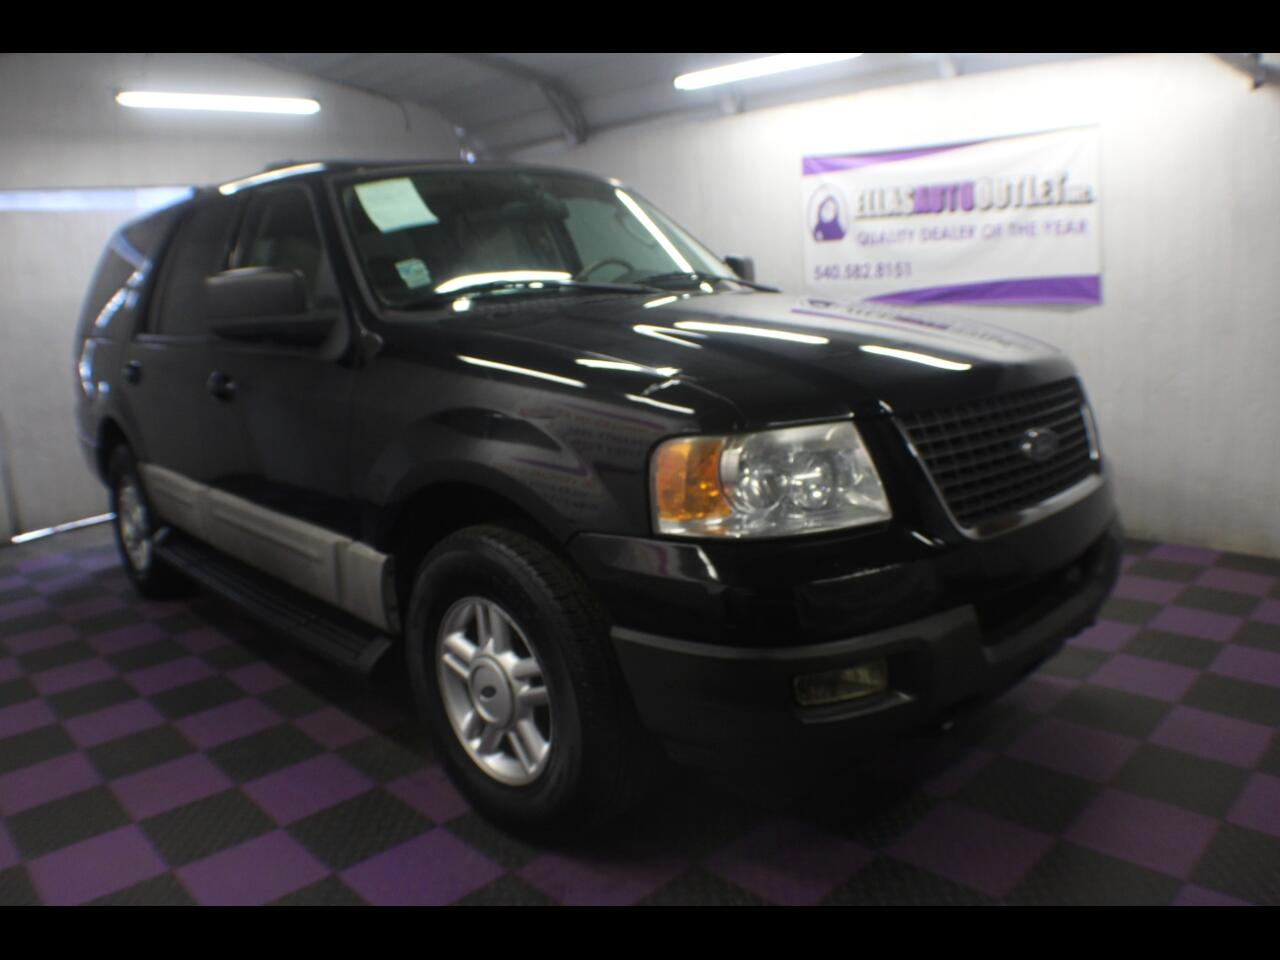 2003 Ford Expedition XLT Premium 4.6L 4WD